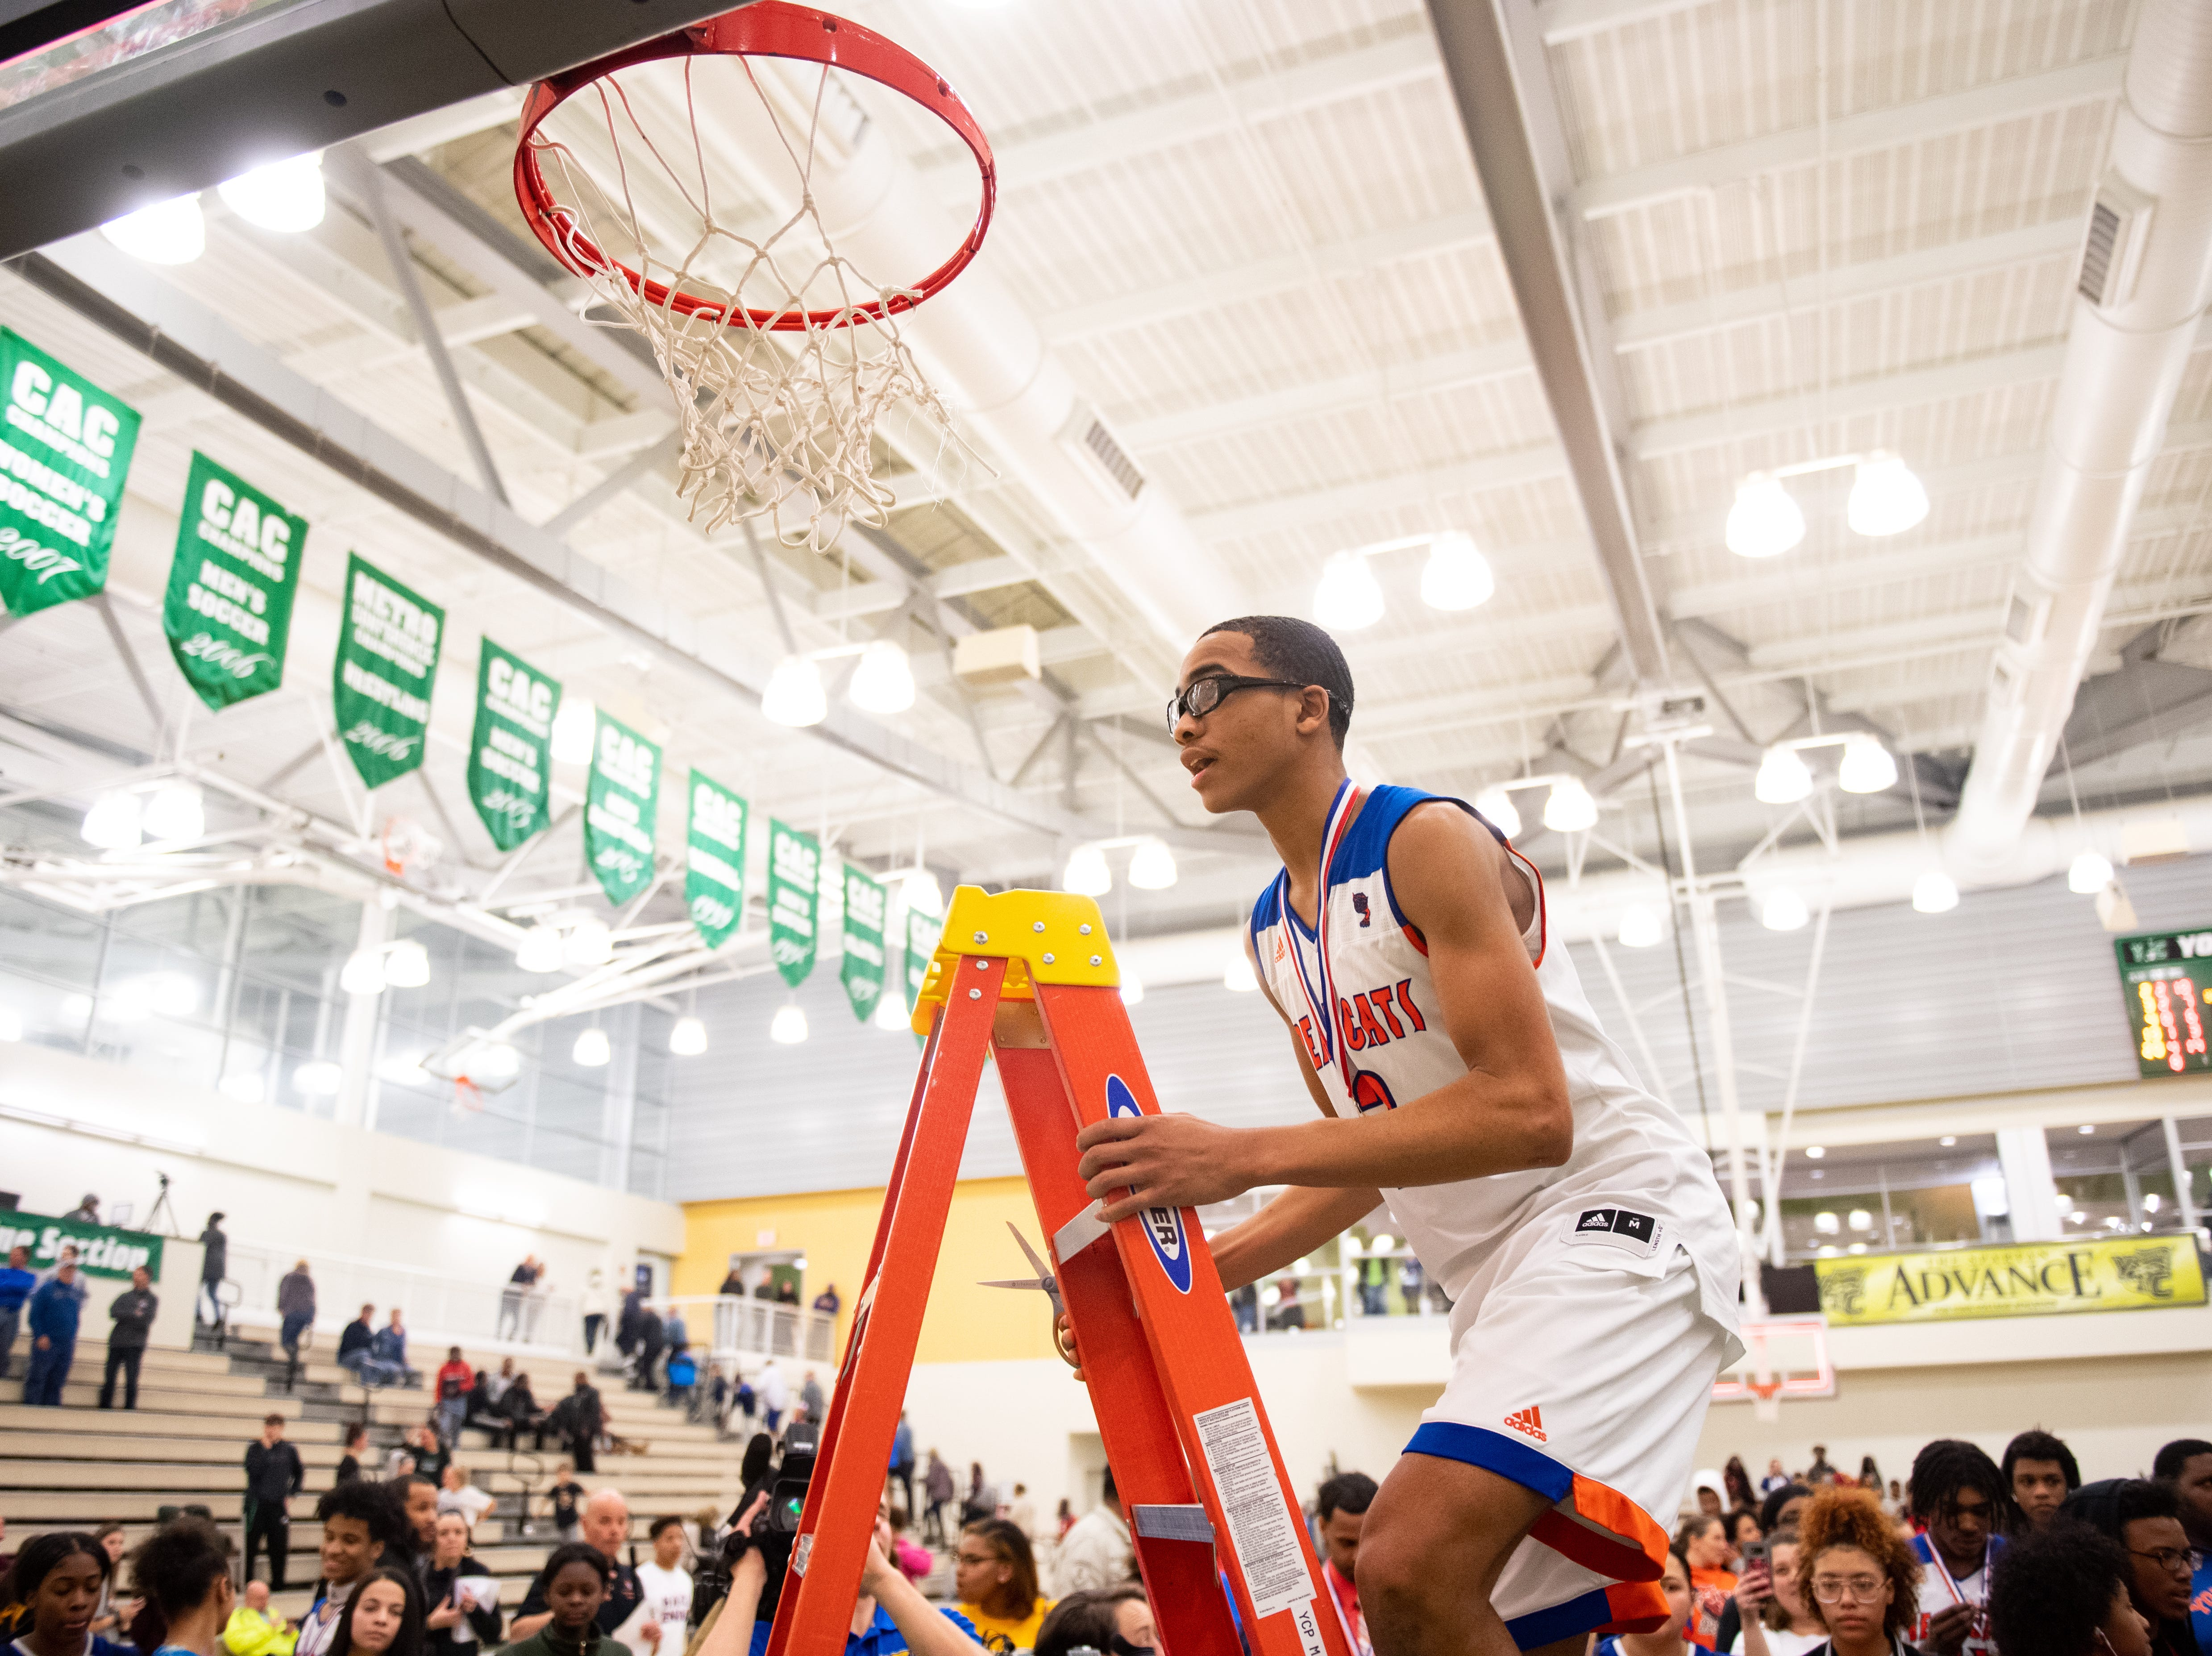 Cameron Gallon climbs up to the net after the YAIAA Division I title game between York High and New Oxford, Friday, February 15, 2019 at York College. The Bearcats defeated the Colonials 54 to 50.